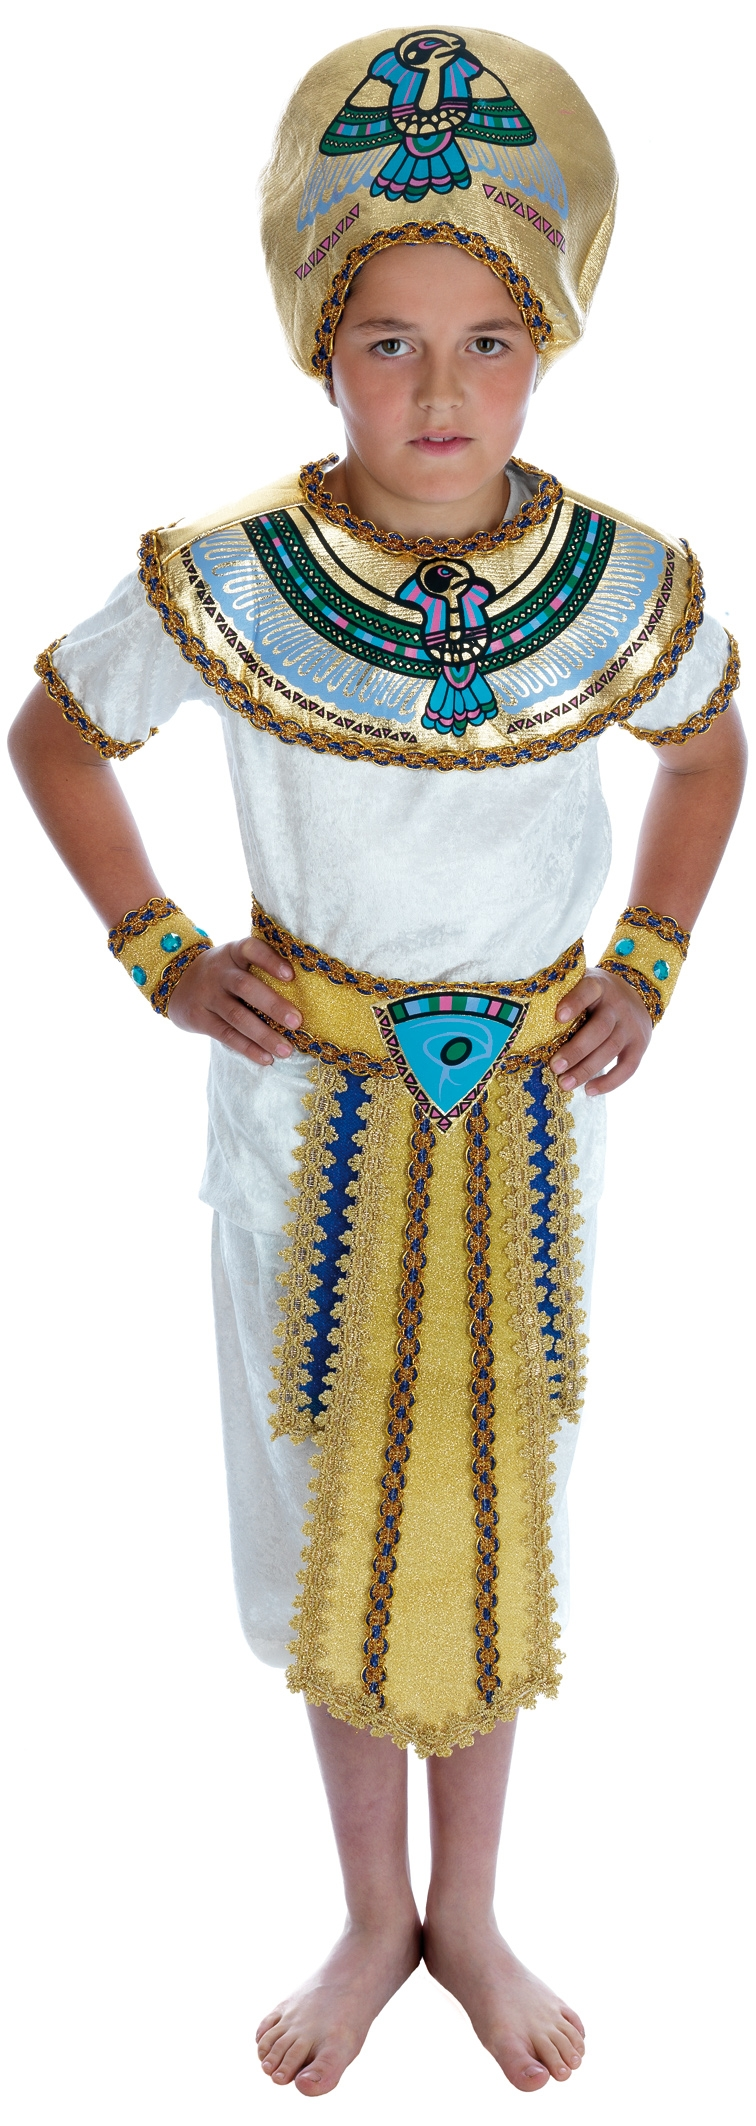 Boys Egyptian Costume  sc 1 st  Lookup Before Buying & Kids king costume - Lookup BeforeBuying